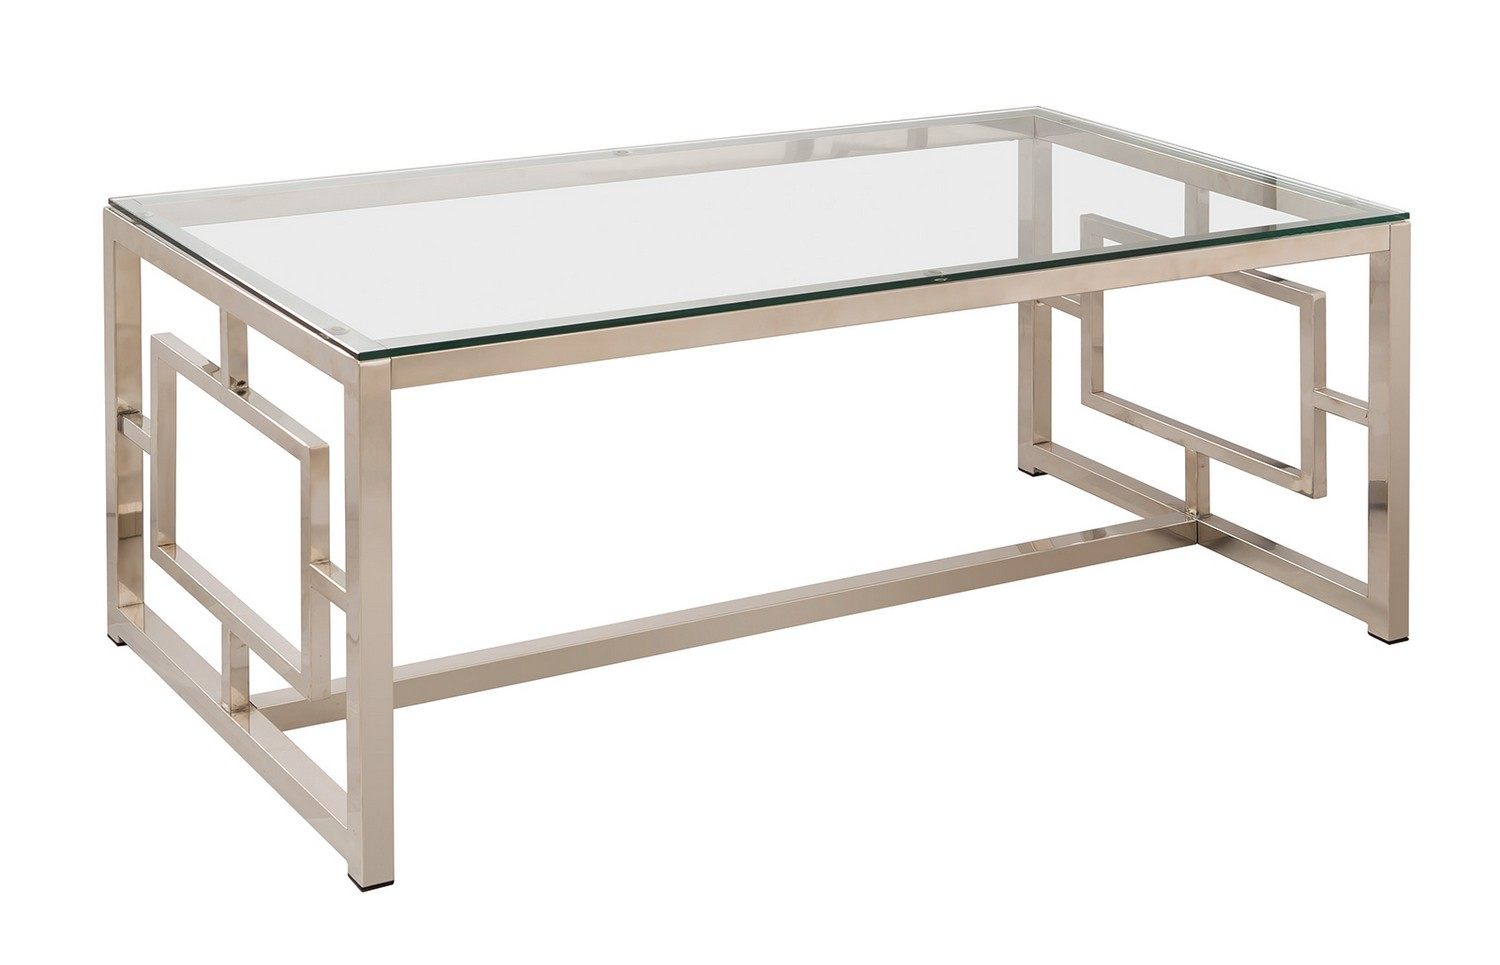 Coaster 703738 Coffee/Cocktail Table - Nickel